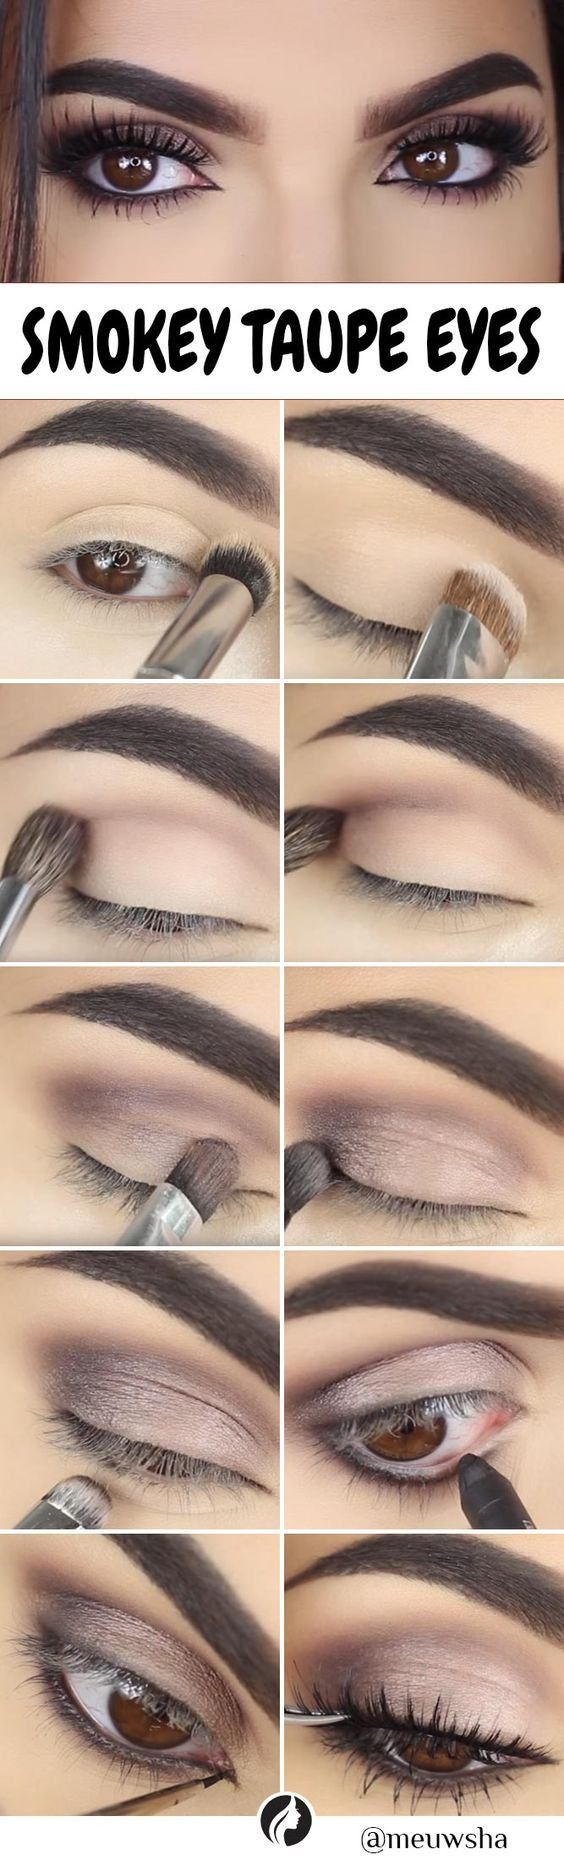 This step by step Smokey Taupe Eye Makeup DIY is perfect and can be followed easily. Check out!